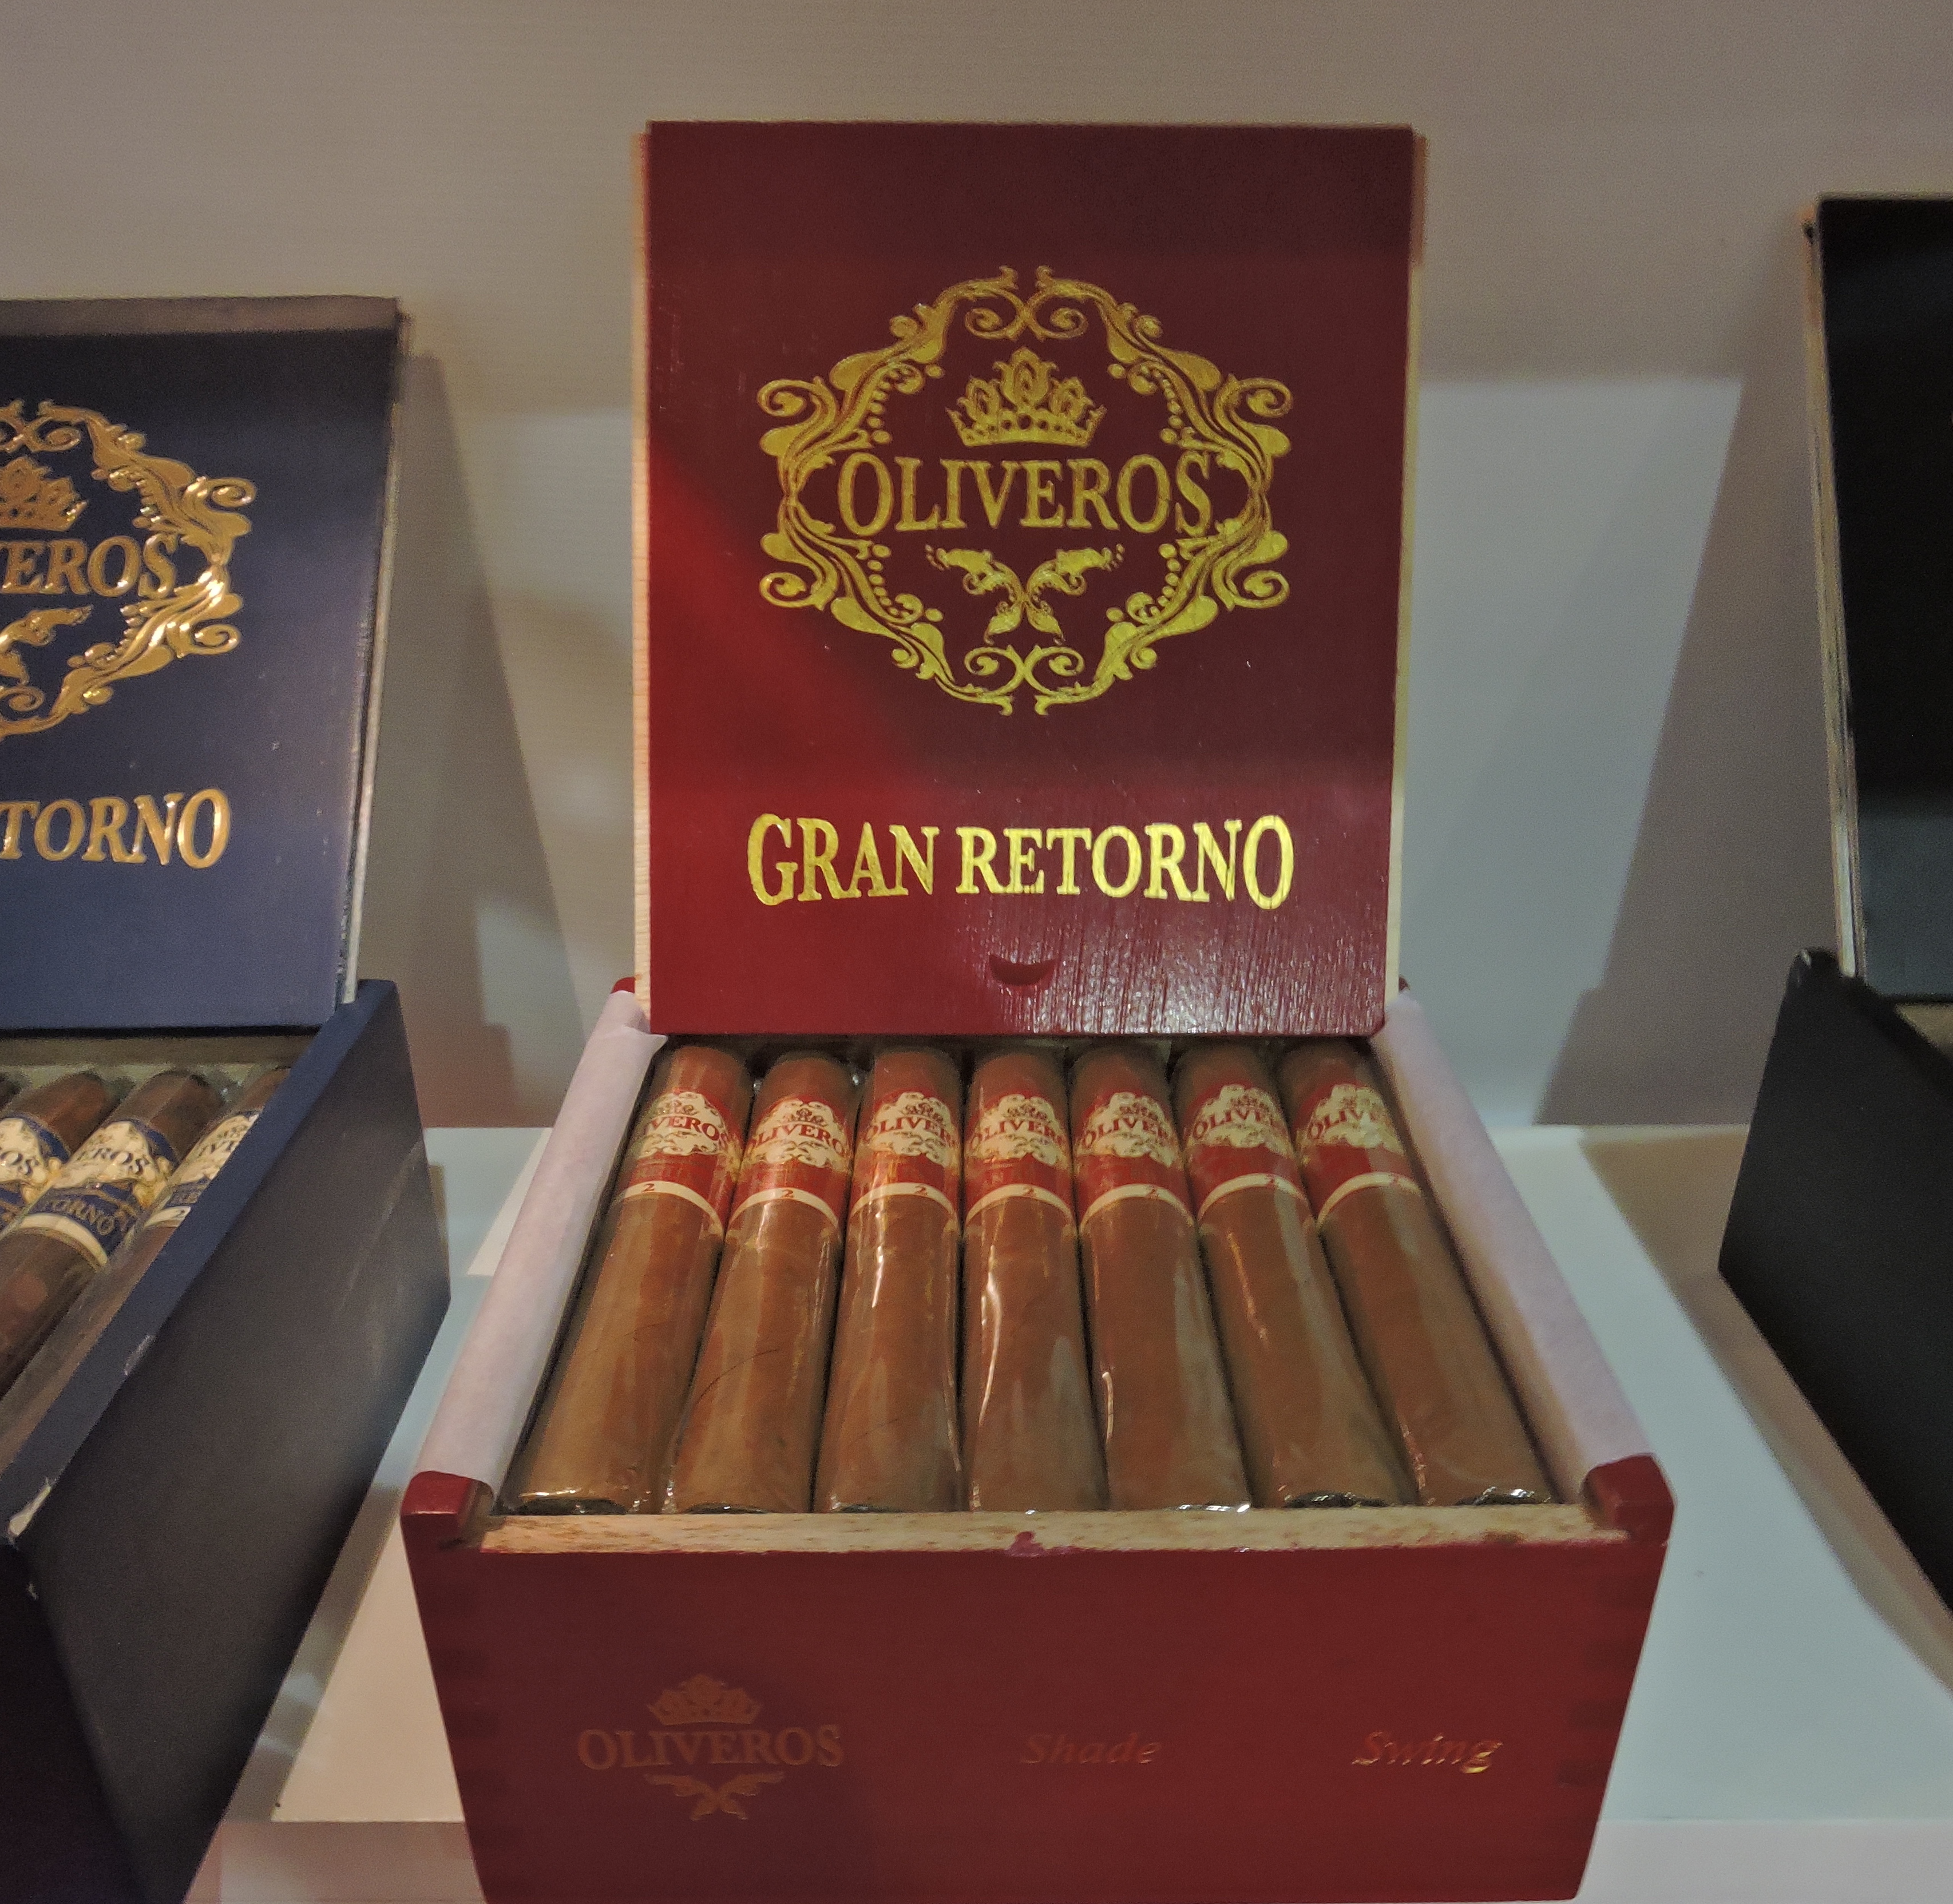 Cigar News: Oliveros Gran Retorno by Boutique Blends Officially Launches at 2016 IPCPR